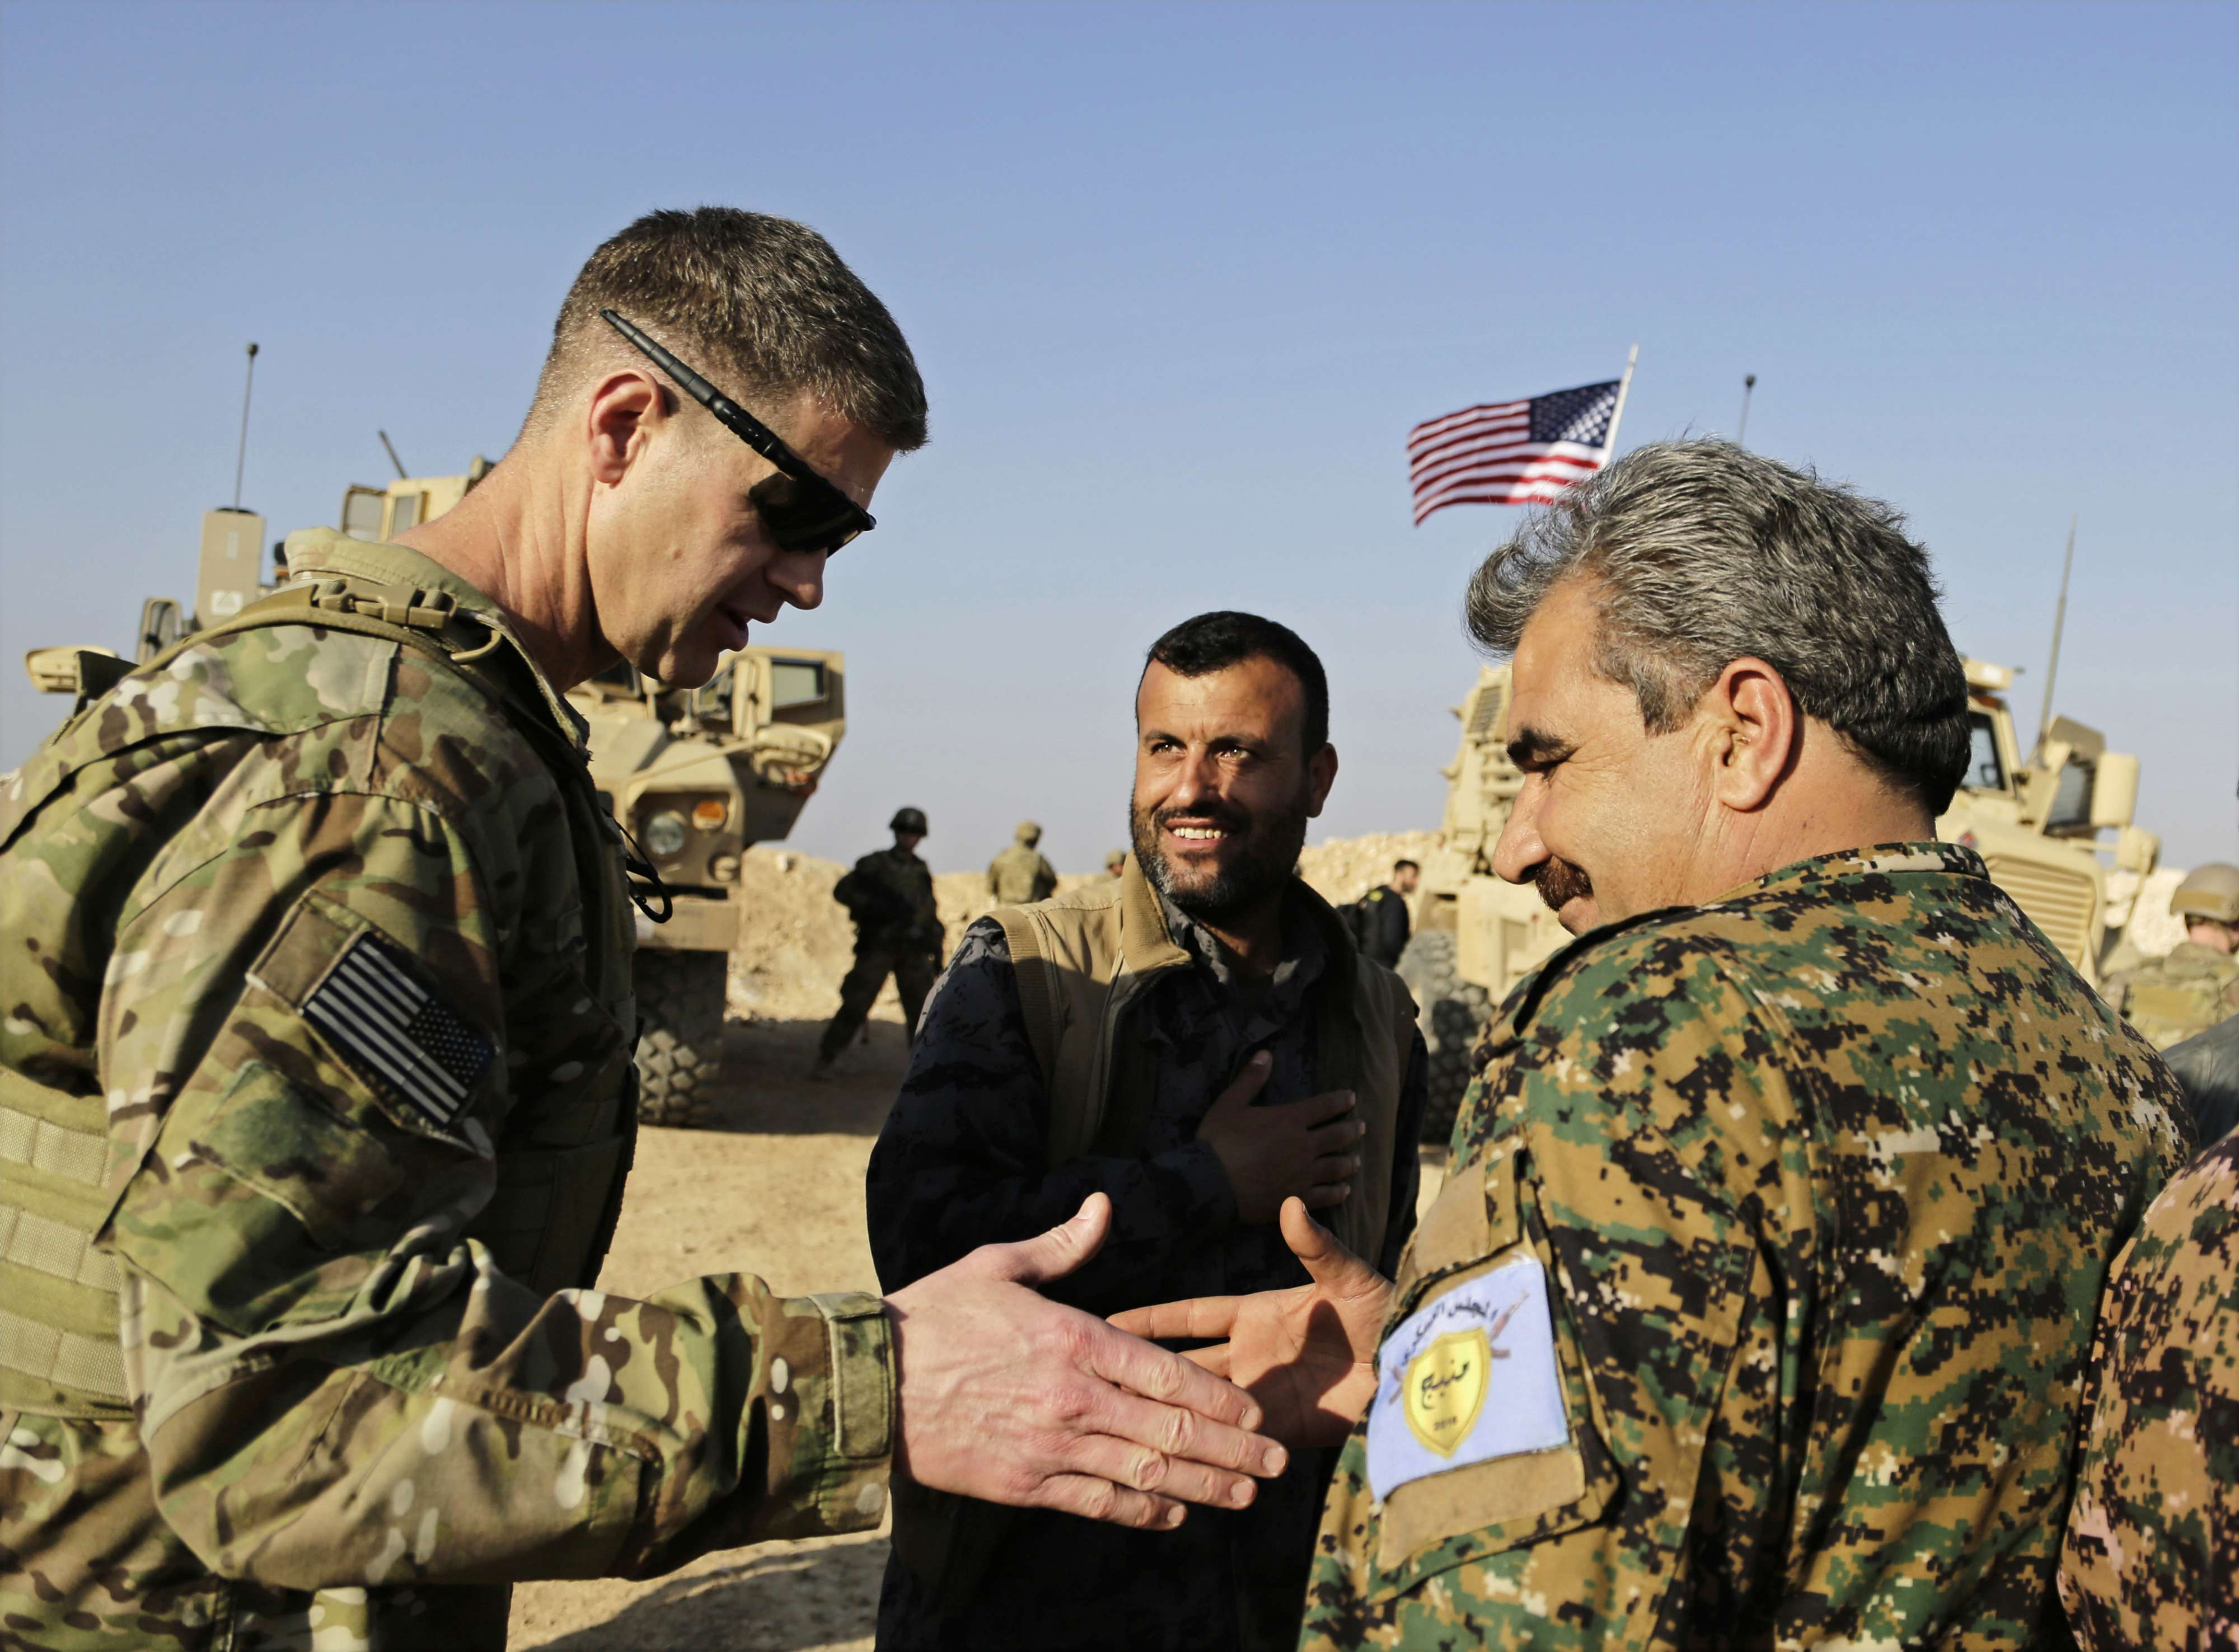 US Army Major-General Jamie Jarrard (L) and Manbij Military Council Commander Muhammed Abu Adeel shake hands during a visit to a small outpost near Manbij, last February. (AP)